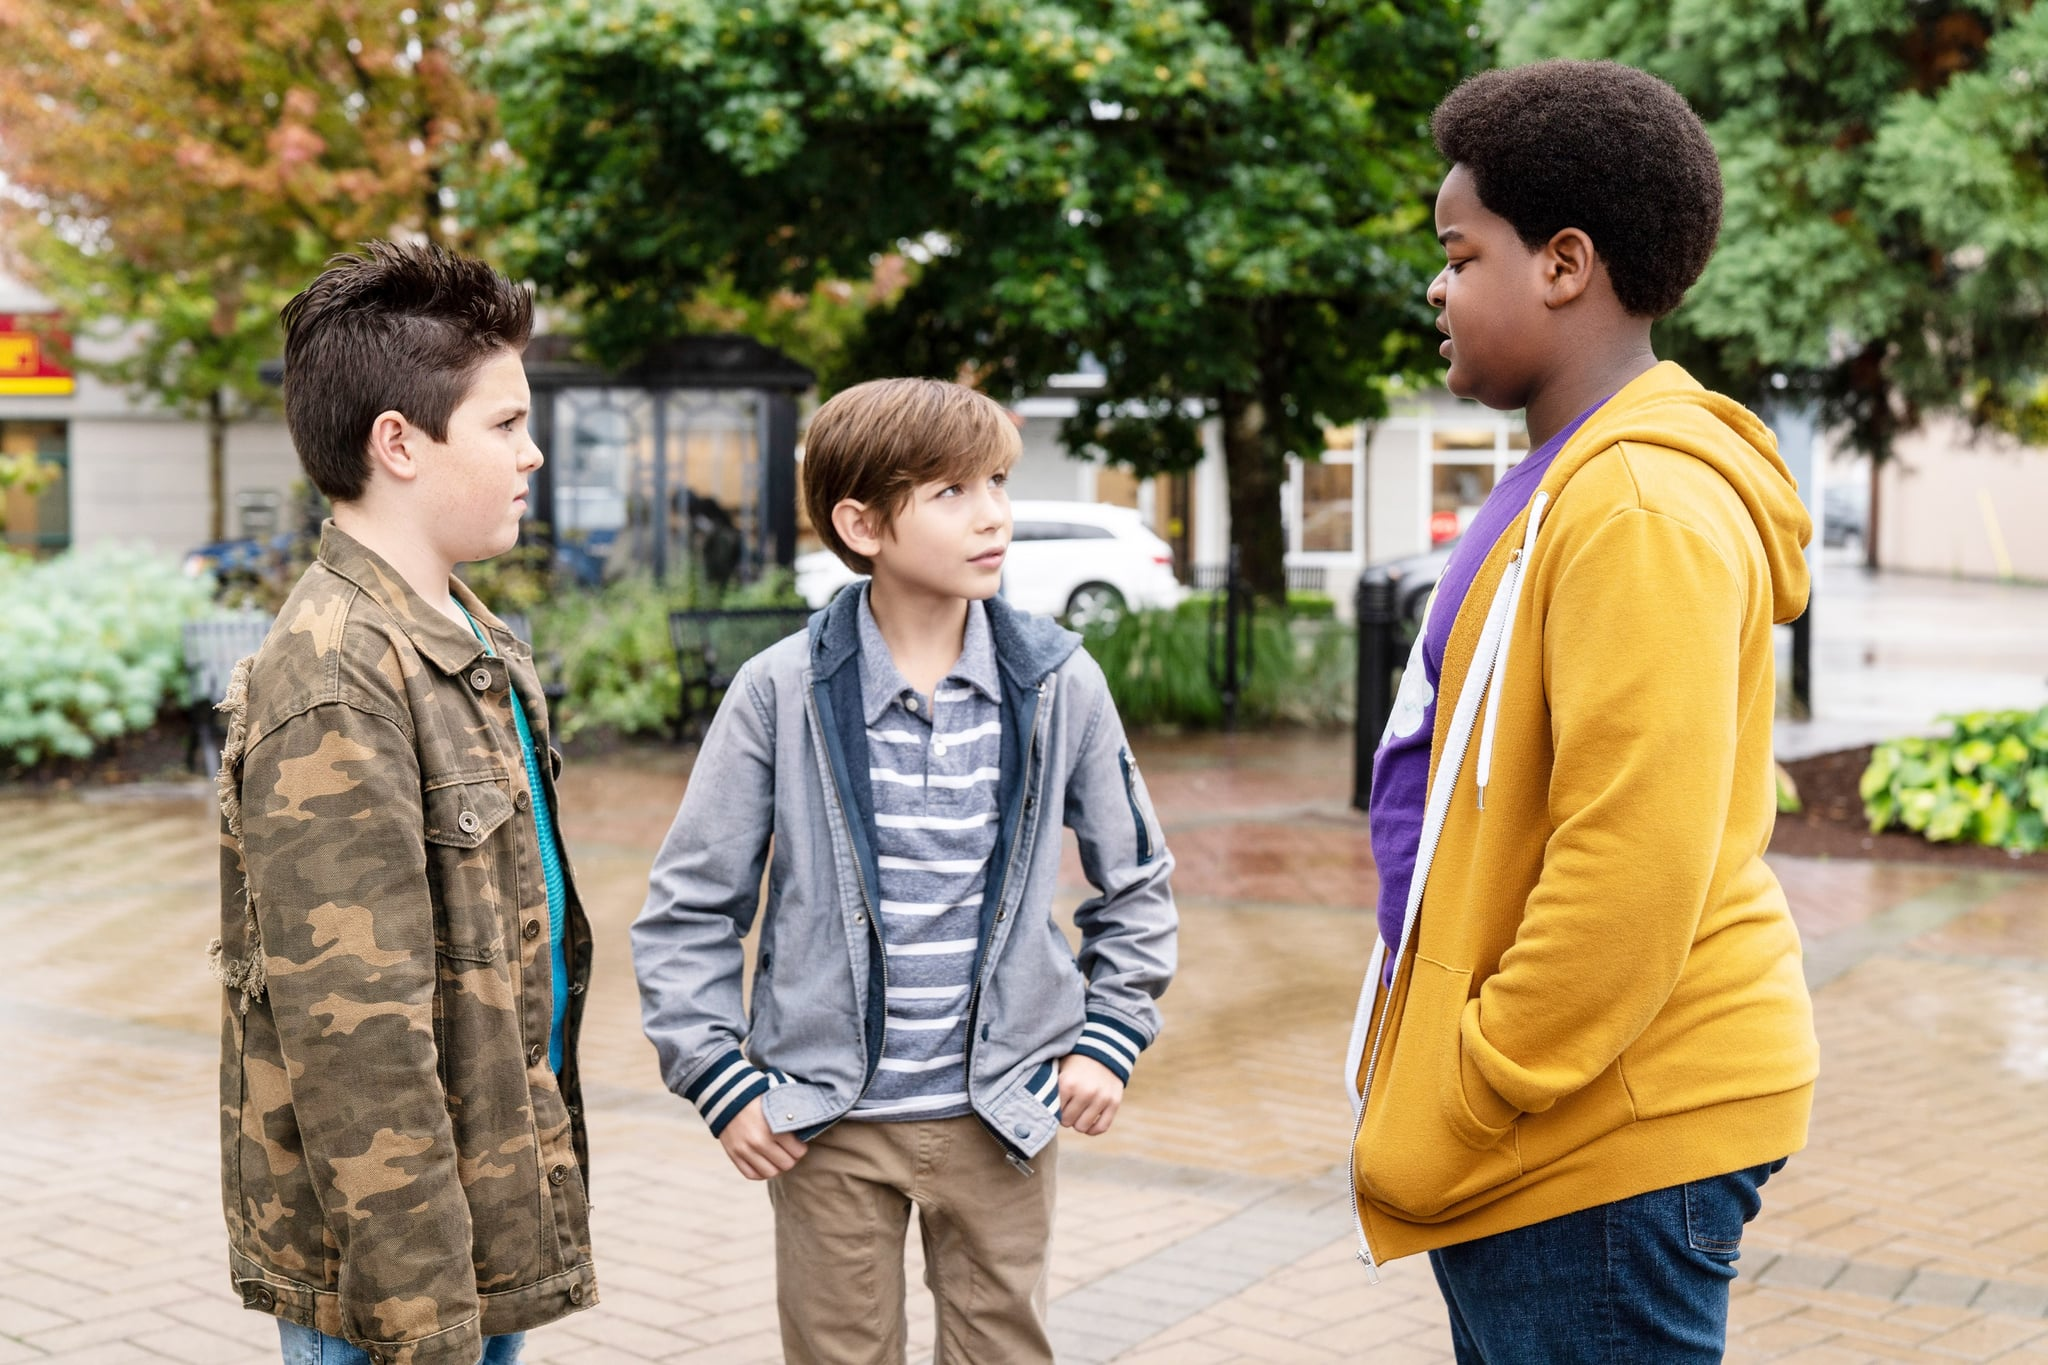 GOOD BOYS, from left: Brady Noon, Jacob Tremblay, Keith L. Williams, 2019. ph: Ed Araquel /  Universal / Courtesy Everett Collection